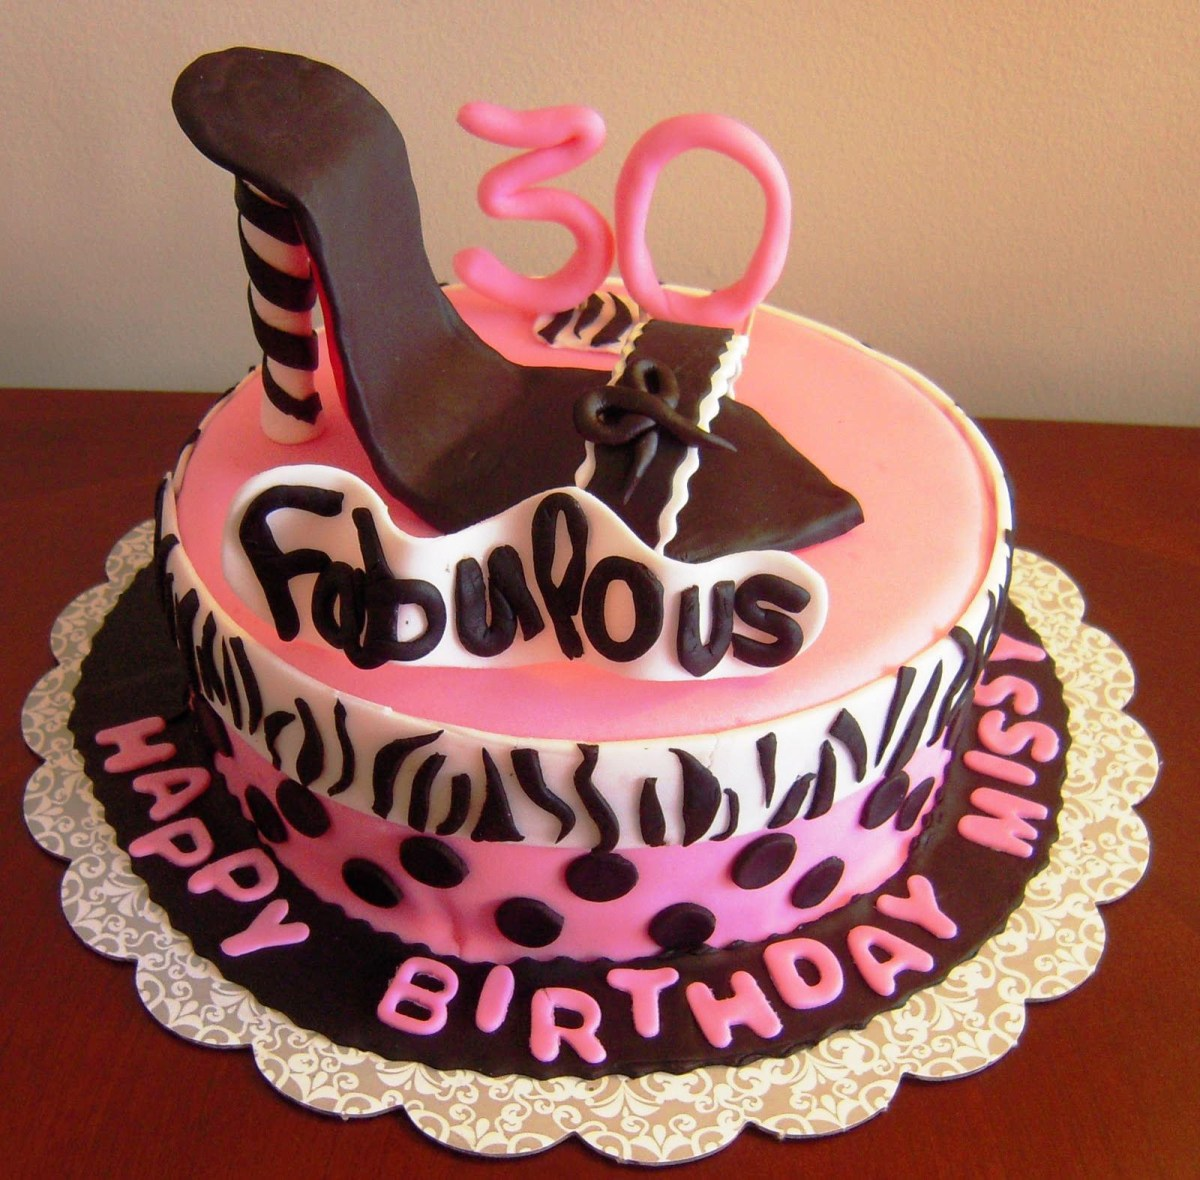 30th Birthday Cake Ideas 30th Birthday Cake Ideas For Men Protoblogr